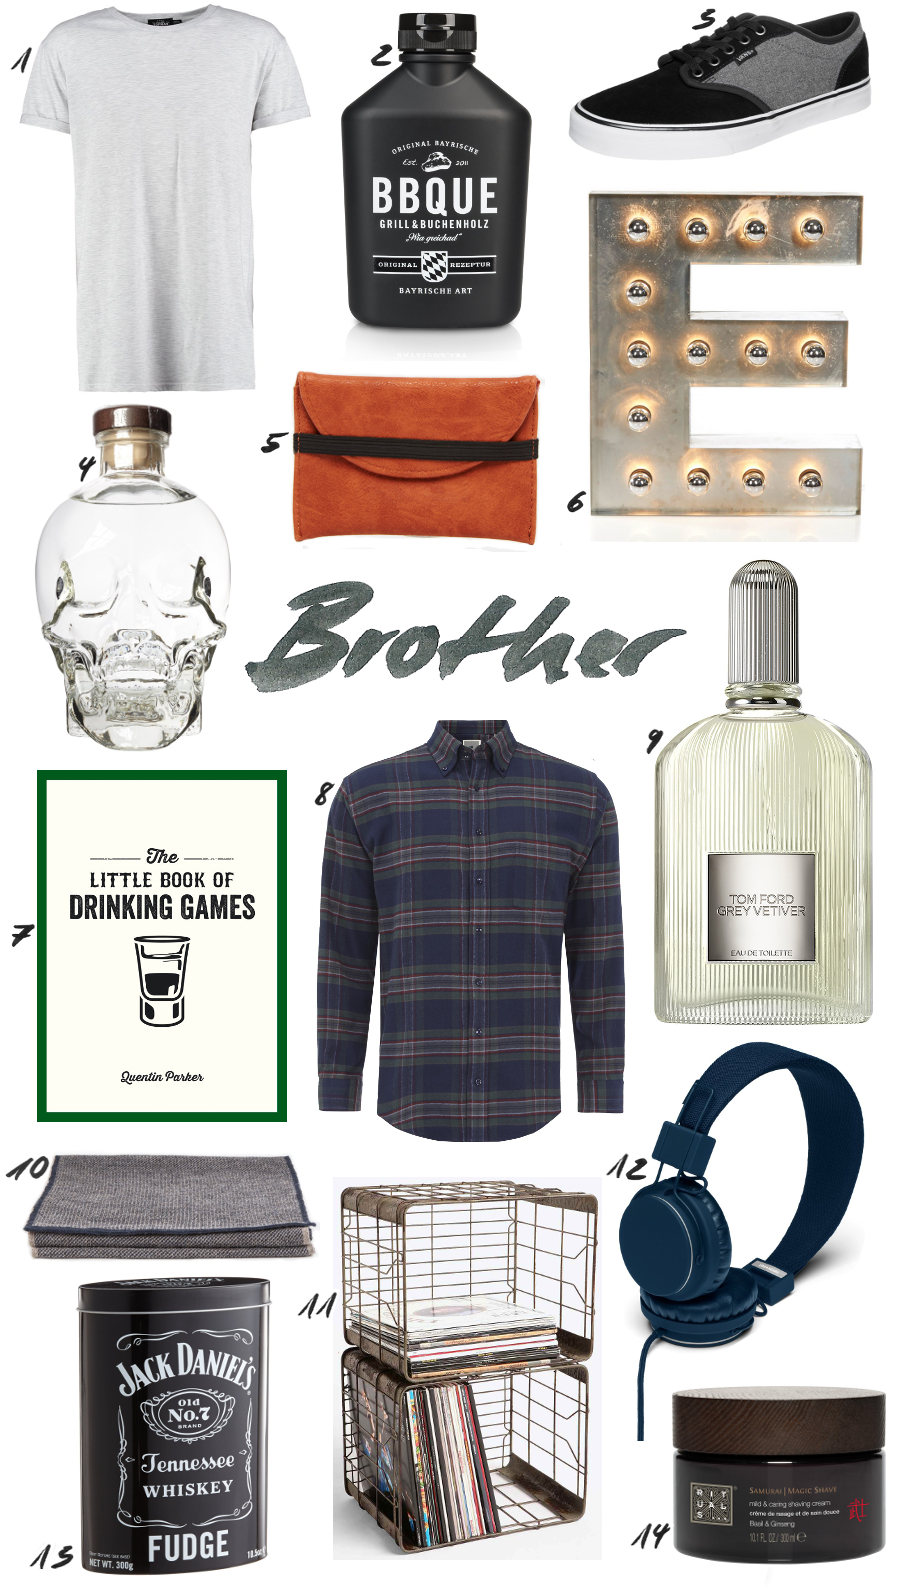 Christmas Presents For Brother.Christmas Gift Guide For Your Brother Christmas Interior